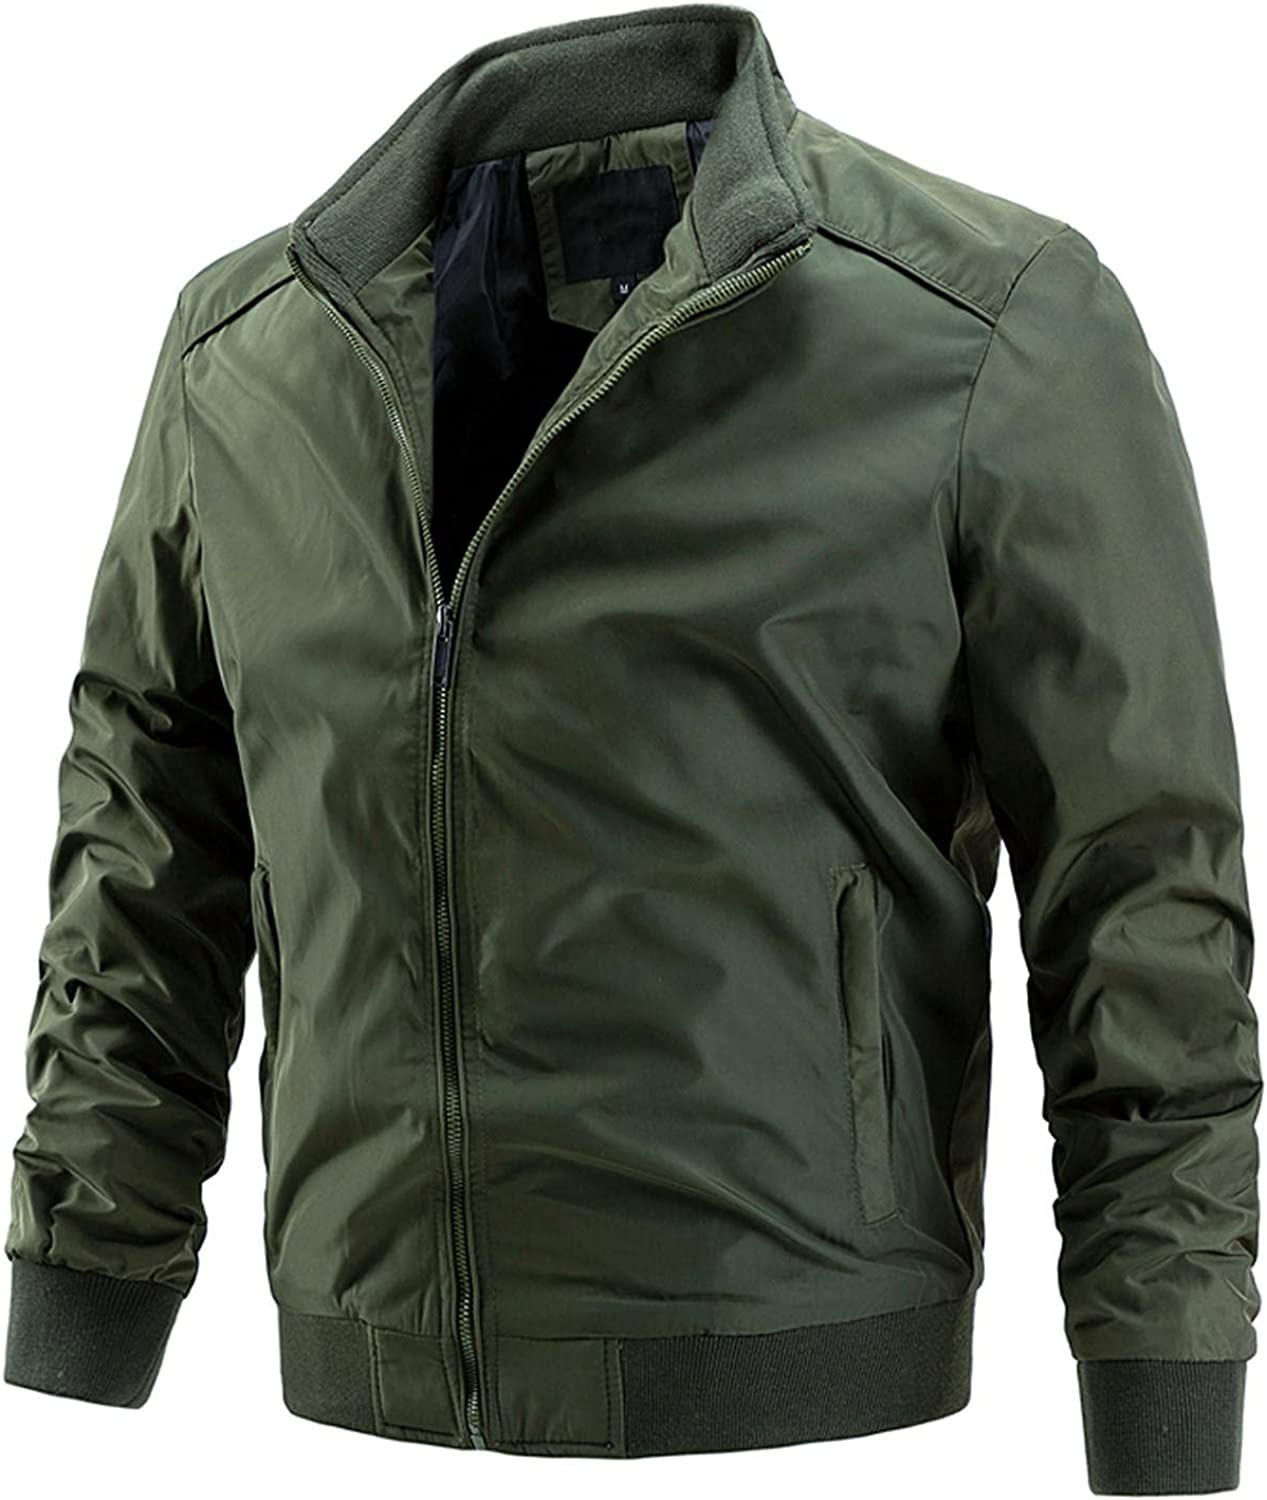 SSDXY Men's Thicken Cotton Parka Jacket Workout Fleece Full Zip Stand-collar Coat Military Tactical Work Jackets Pocket